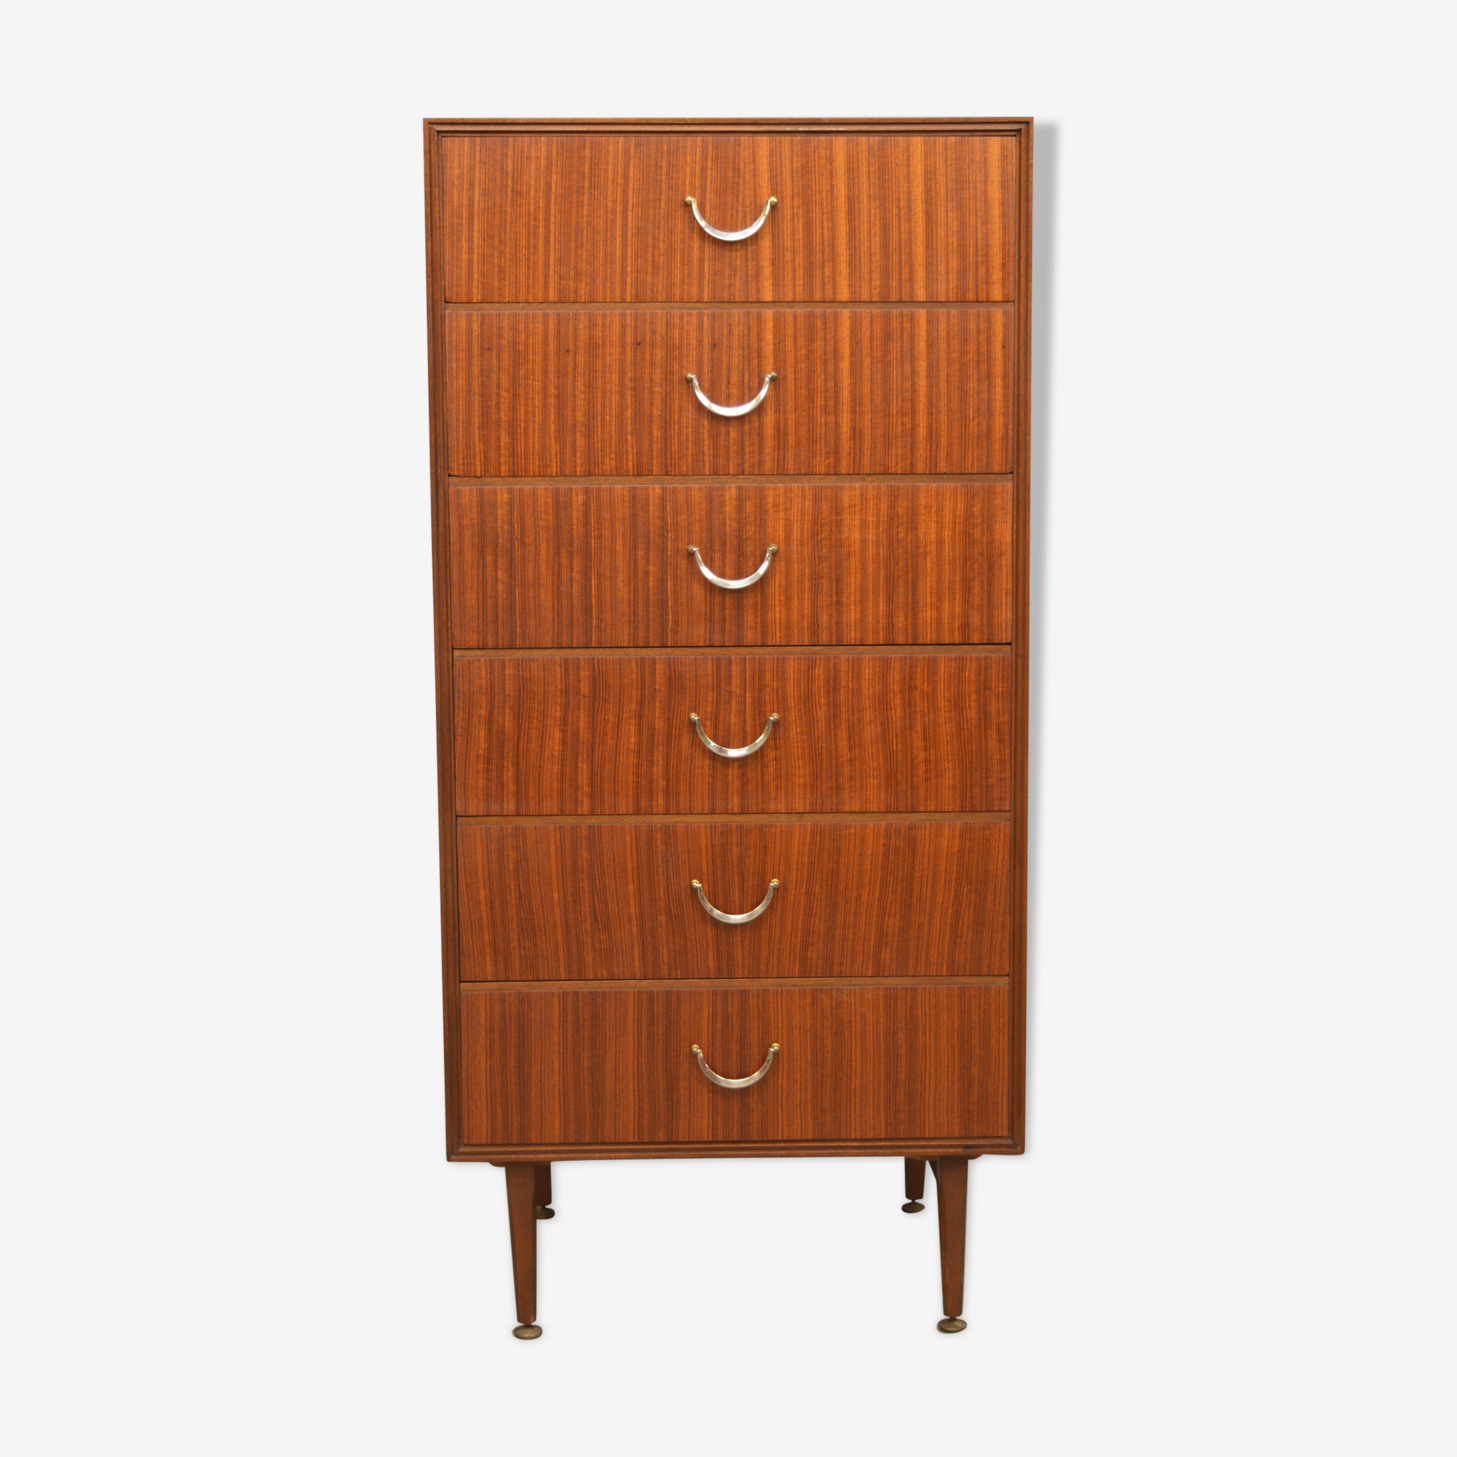 Mid century teak chest of drawers by Meredew